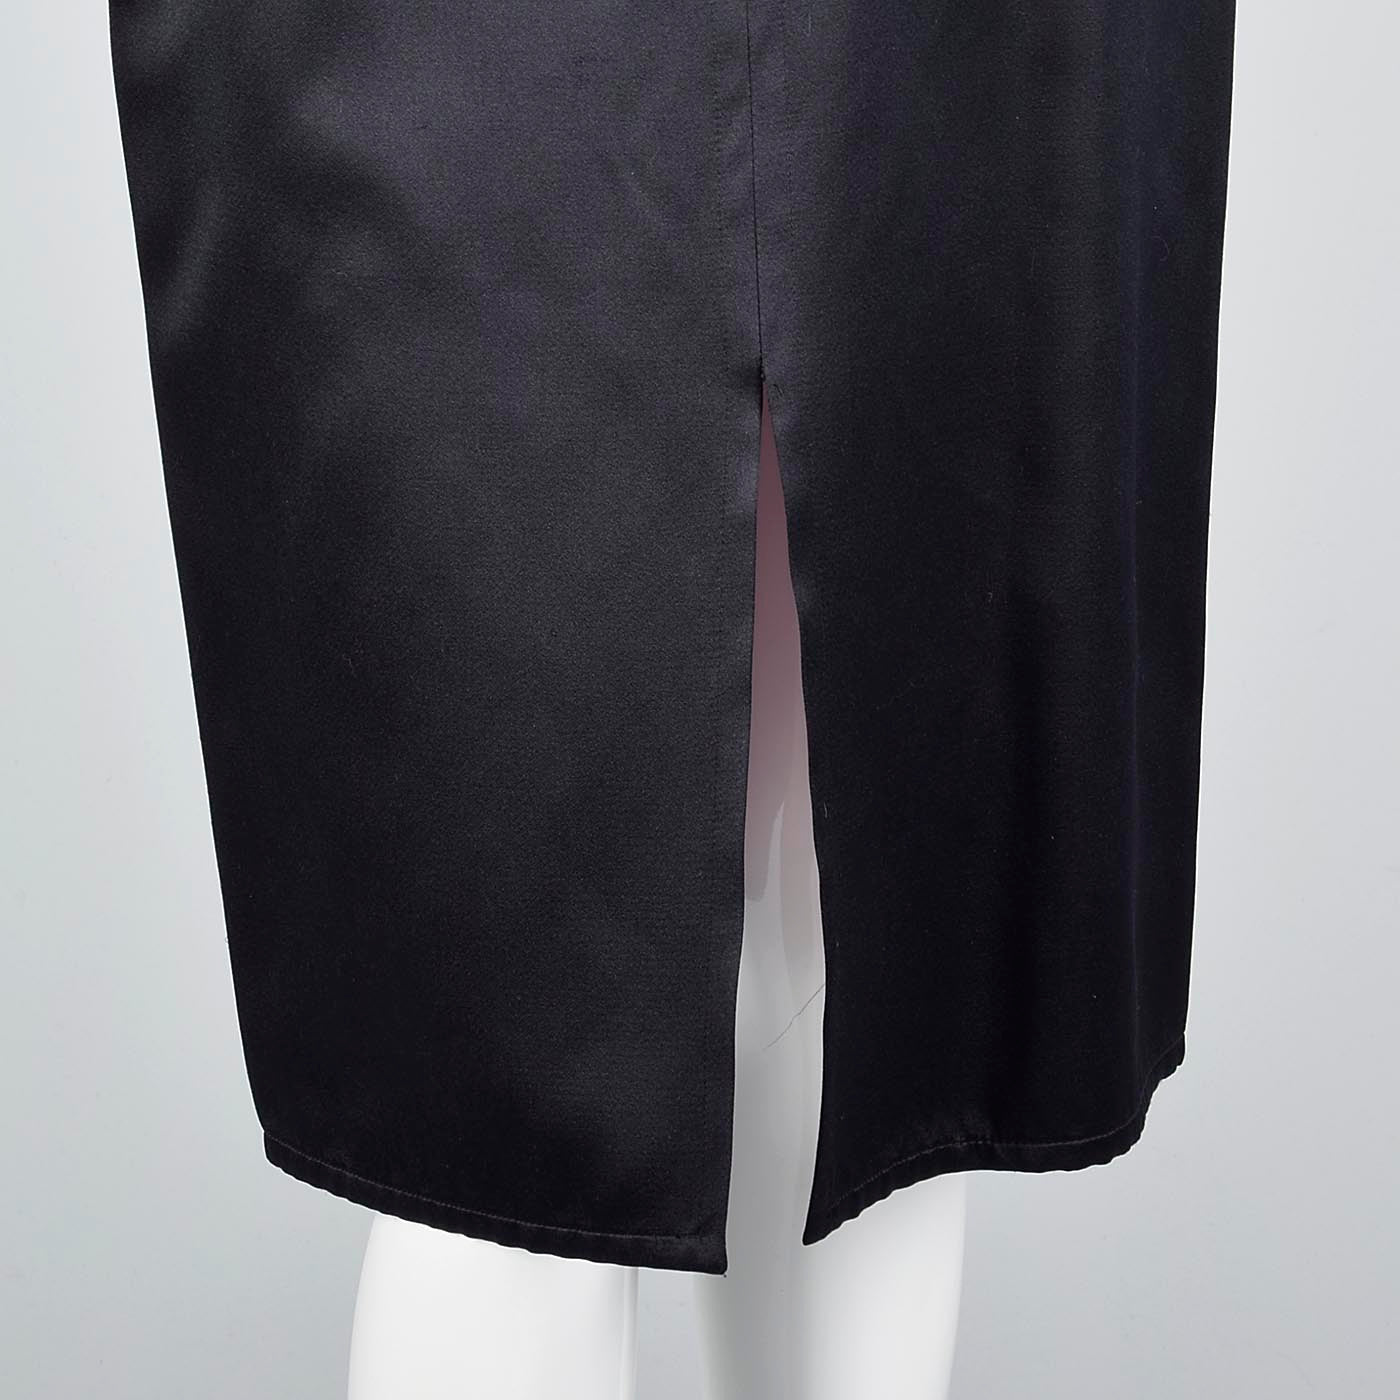 Yves Saint Laurent Rive Gauche Black Satin Satin Skirt Suit with Hot Pink Lining